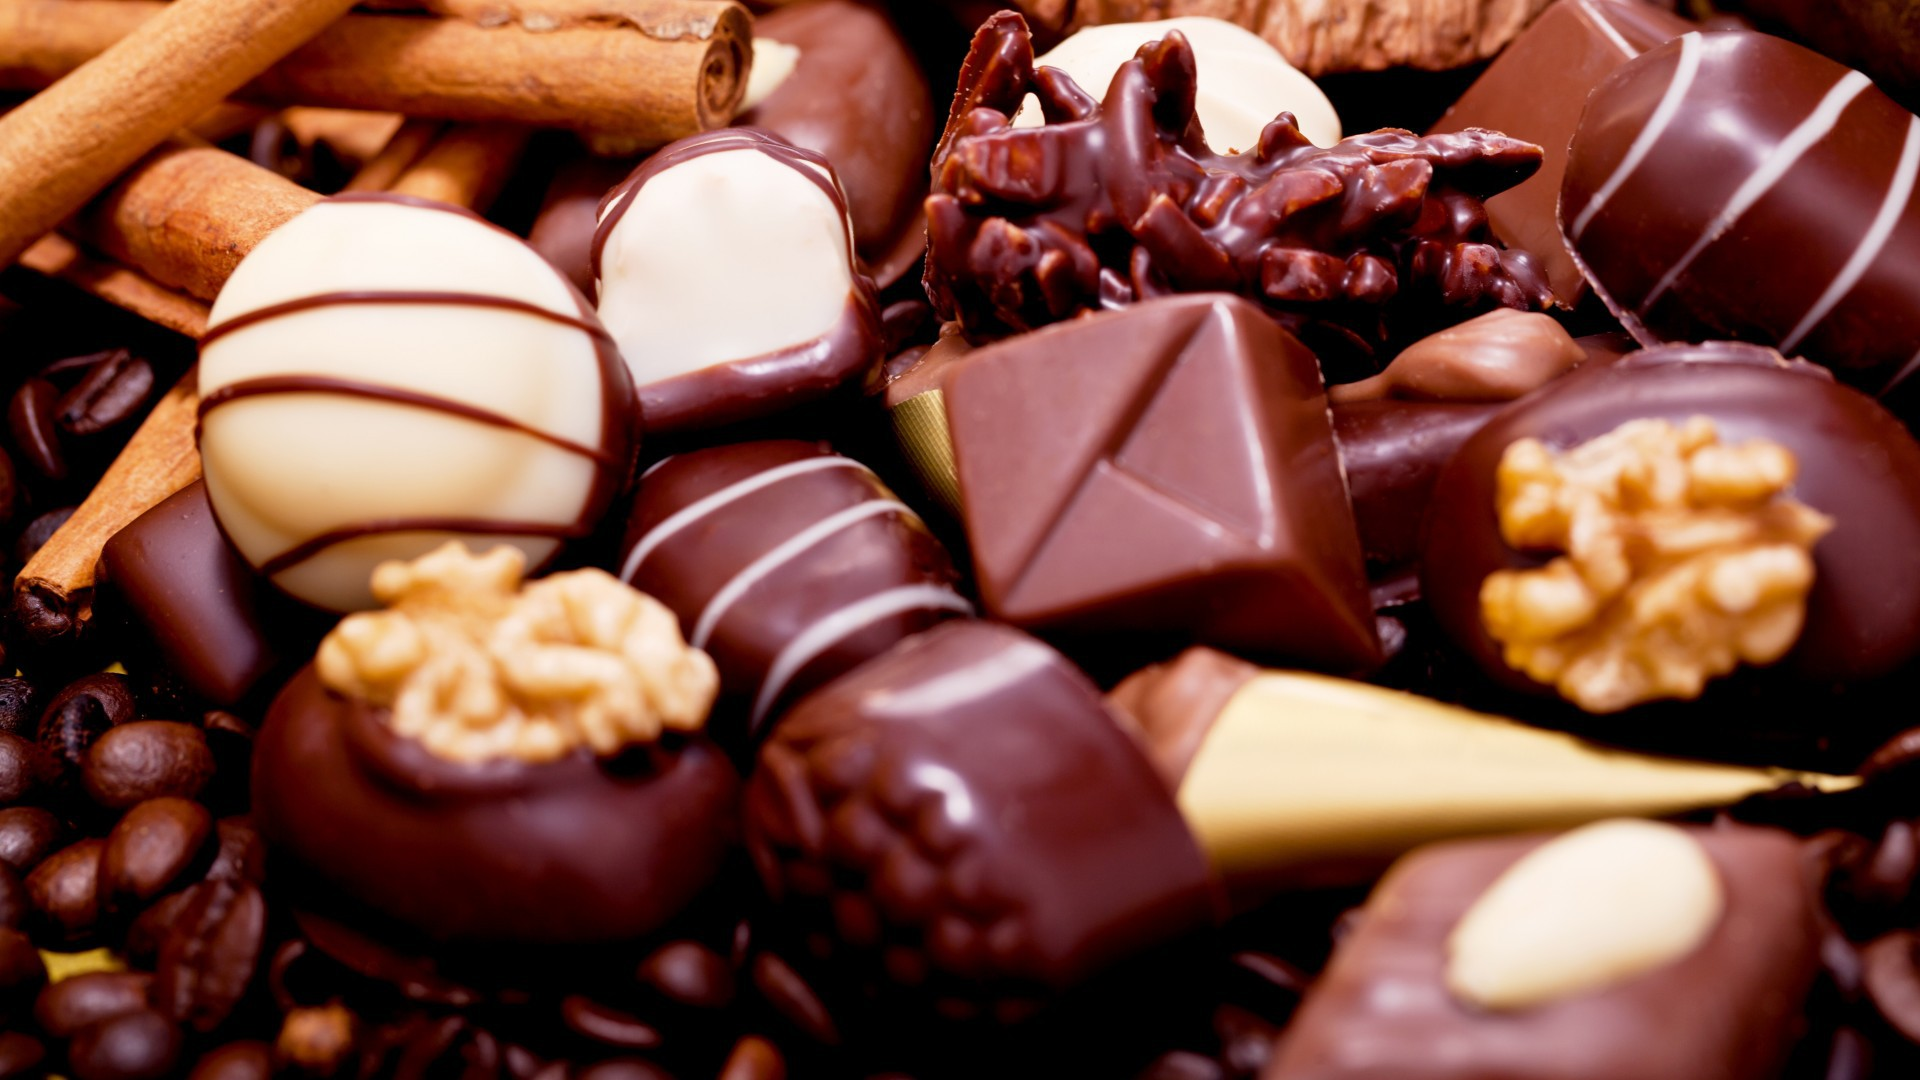 Assorted chocolate candy wallpapers and images   wallpapers pictures 1920x1080